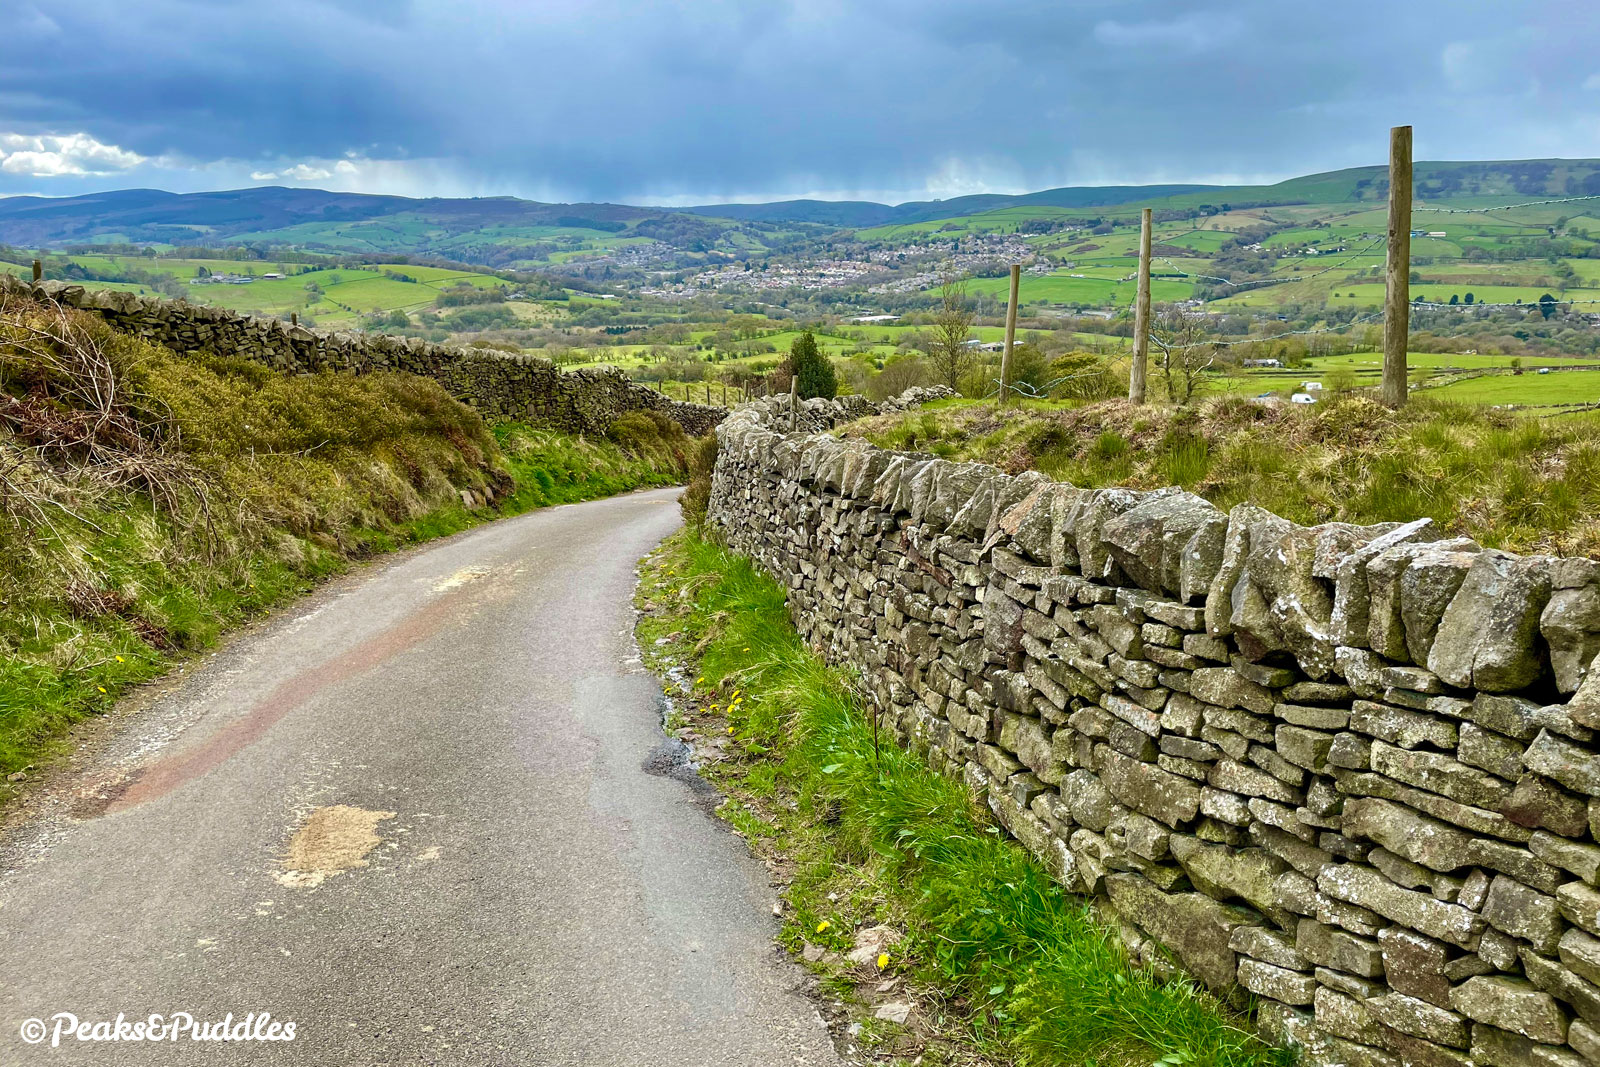 With Whaley Bridge central in the distance and the Tors of the Upper Goyt Valley to the left, the lane falls down the side of Chinley Churn.